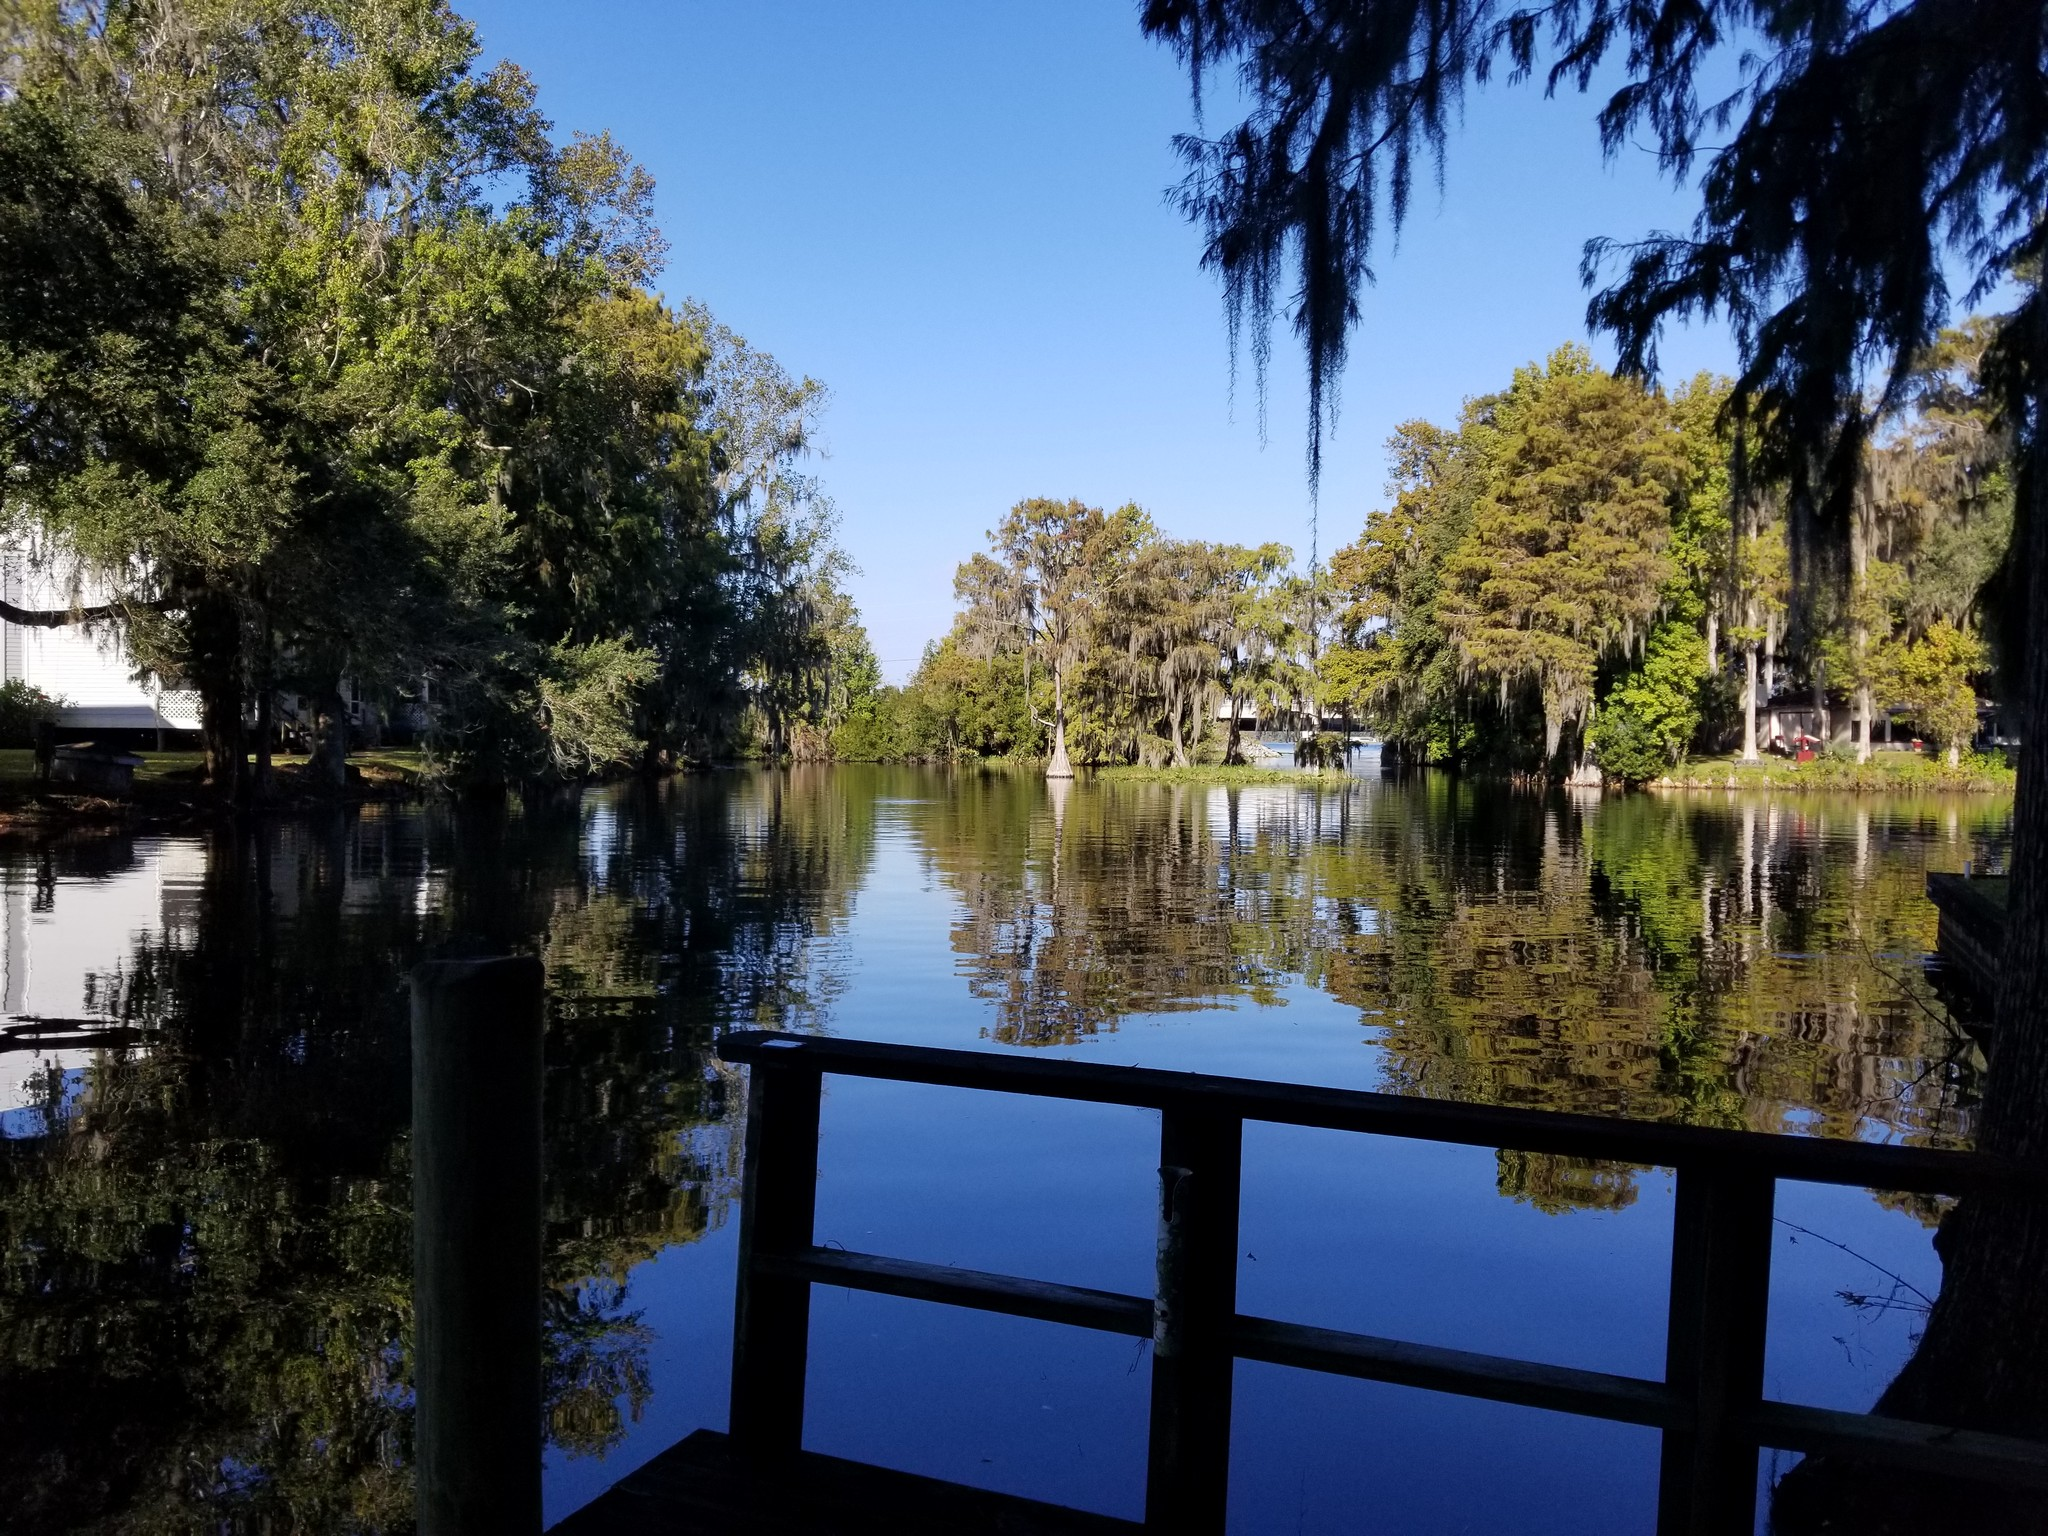 Photo taken from dock on the property of the water with lots of trees on water's edge and some neighboring houses visible